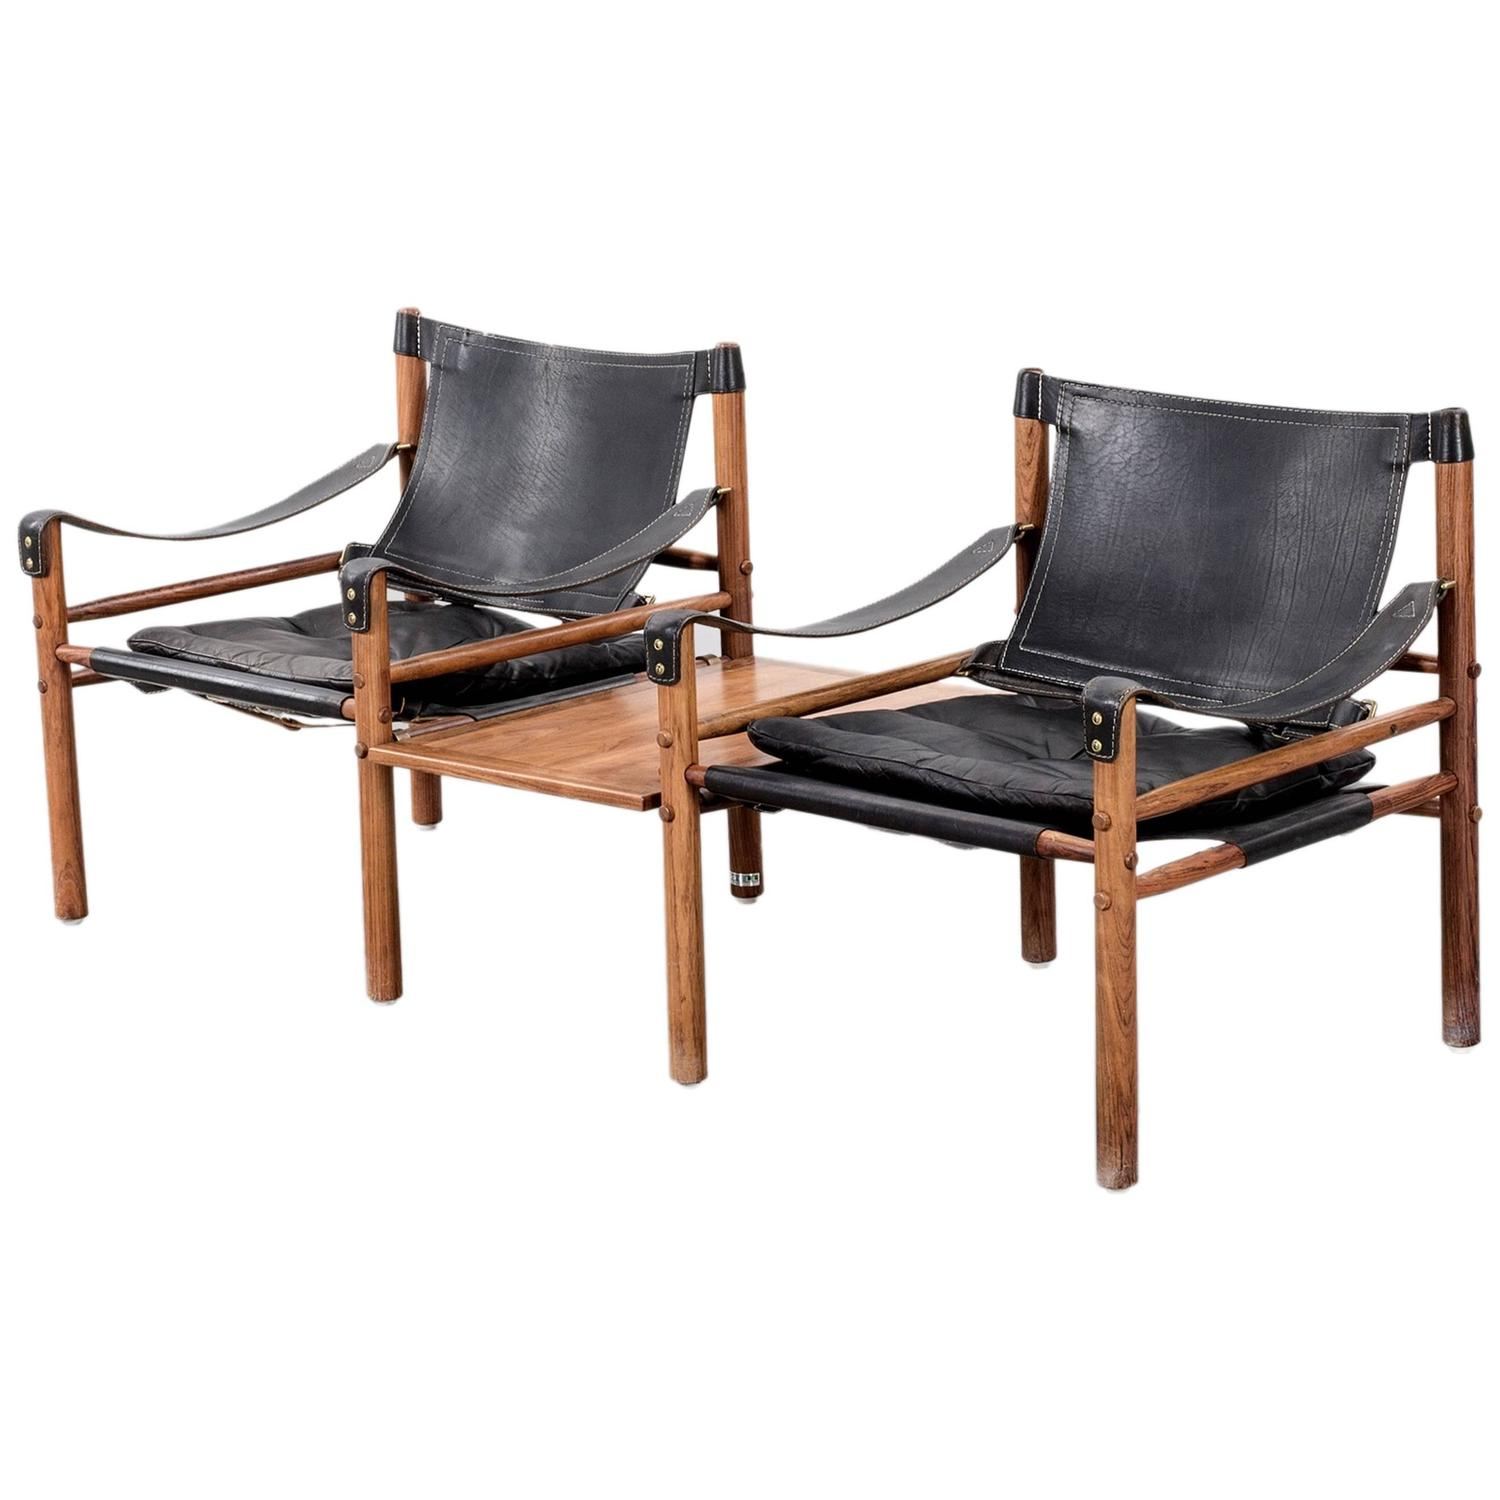 Furnitureinfashion Is Offering Very Affordable Arctic: Arne Norell Safari Sirocco Chairs In Rosewood With